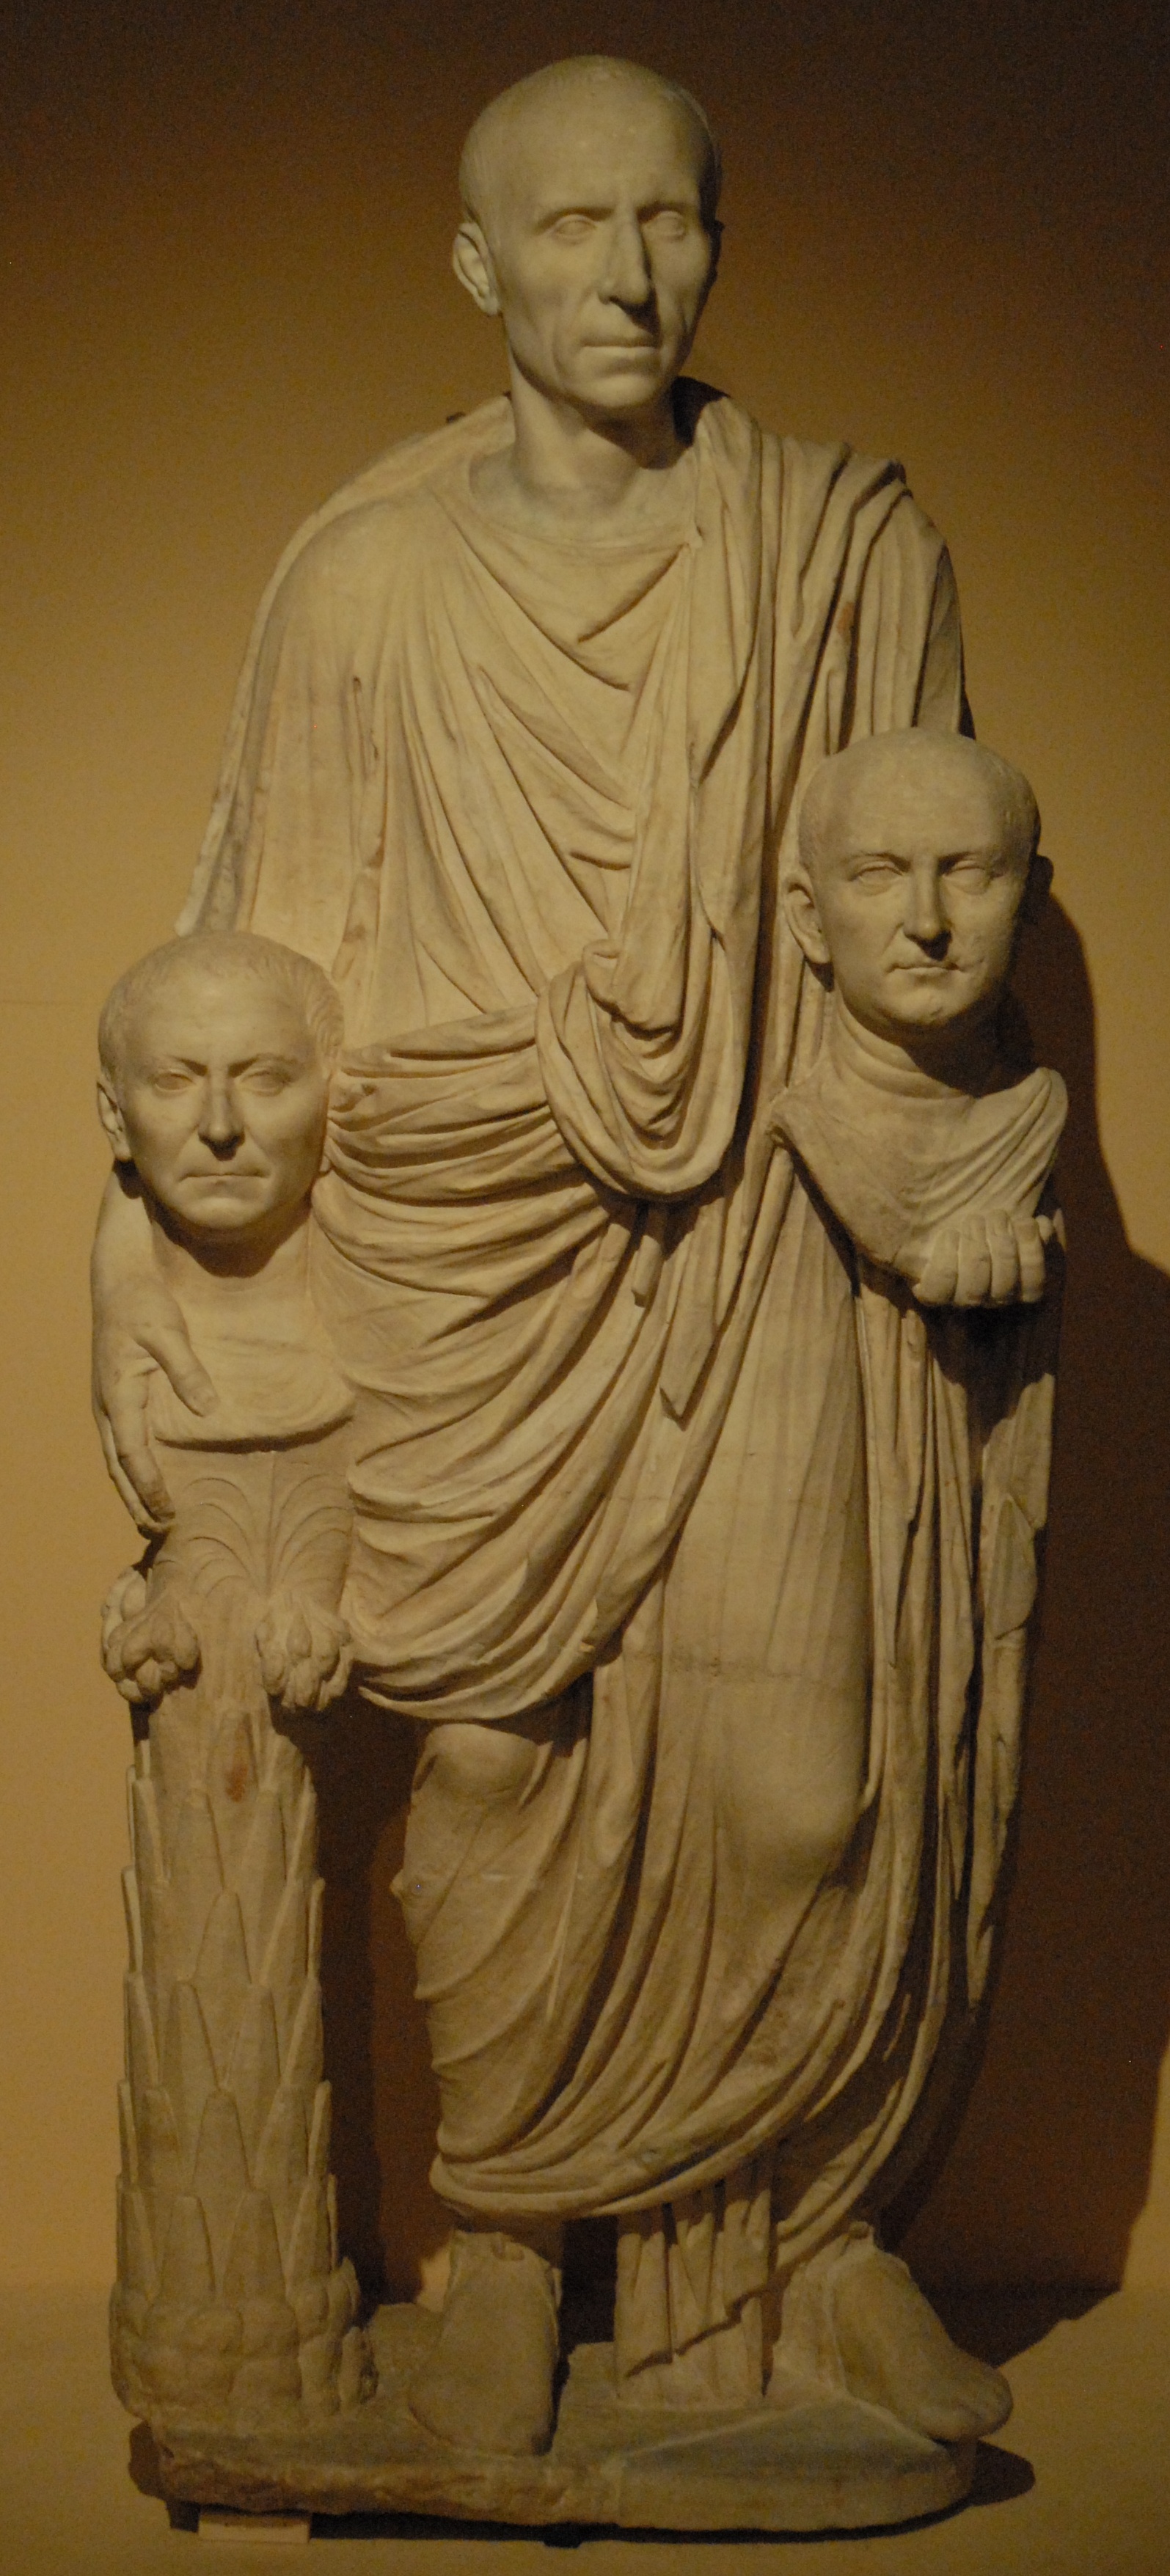 marble statue of senator with ancestor-busts, last decade 1c BC